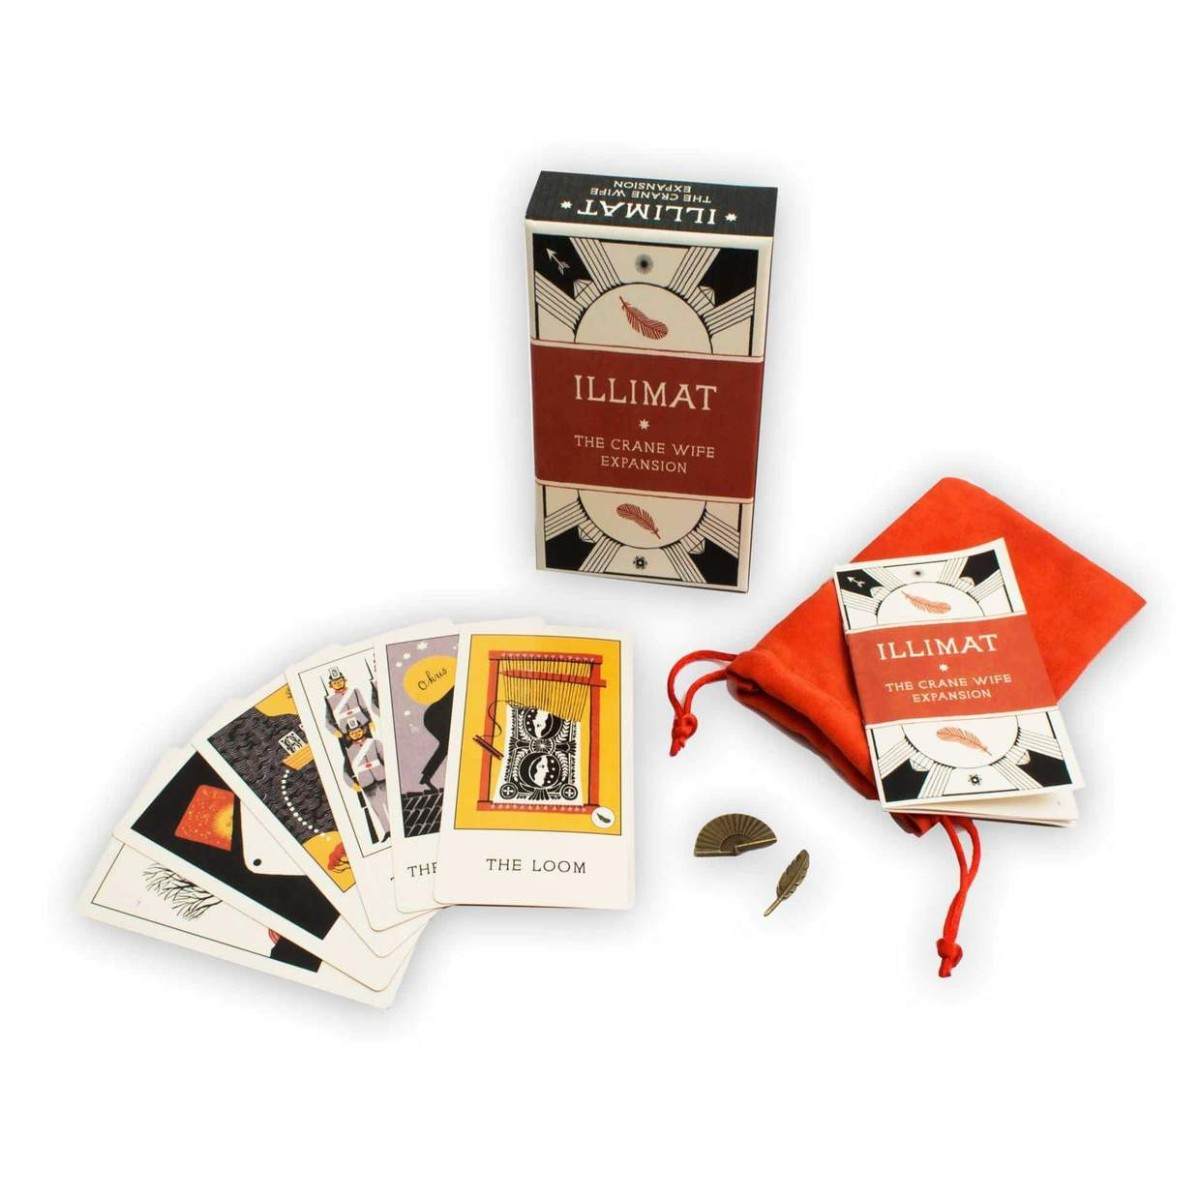 Illimat: The Crane Wife Expansion